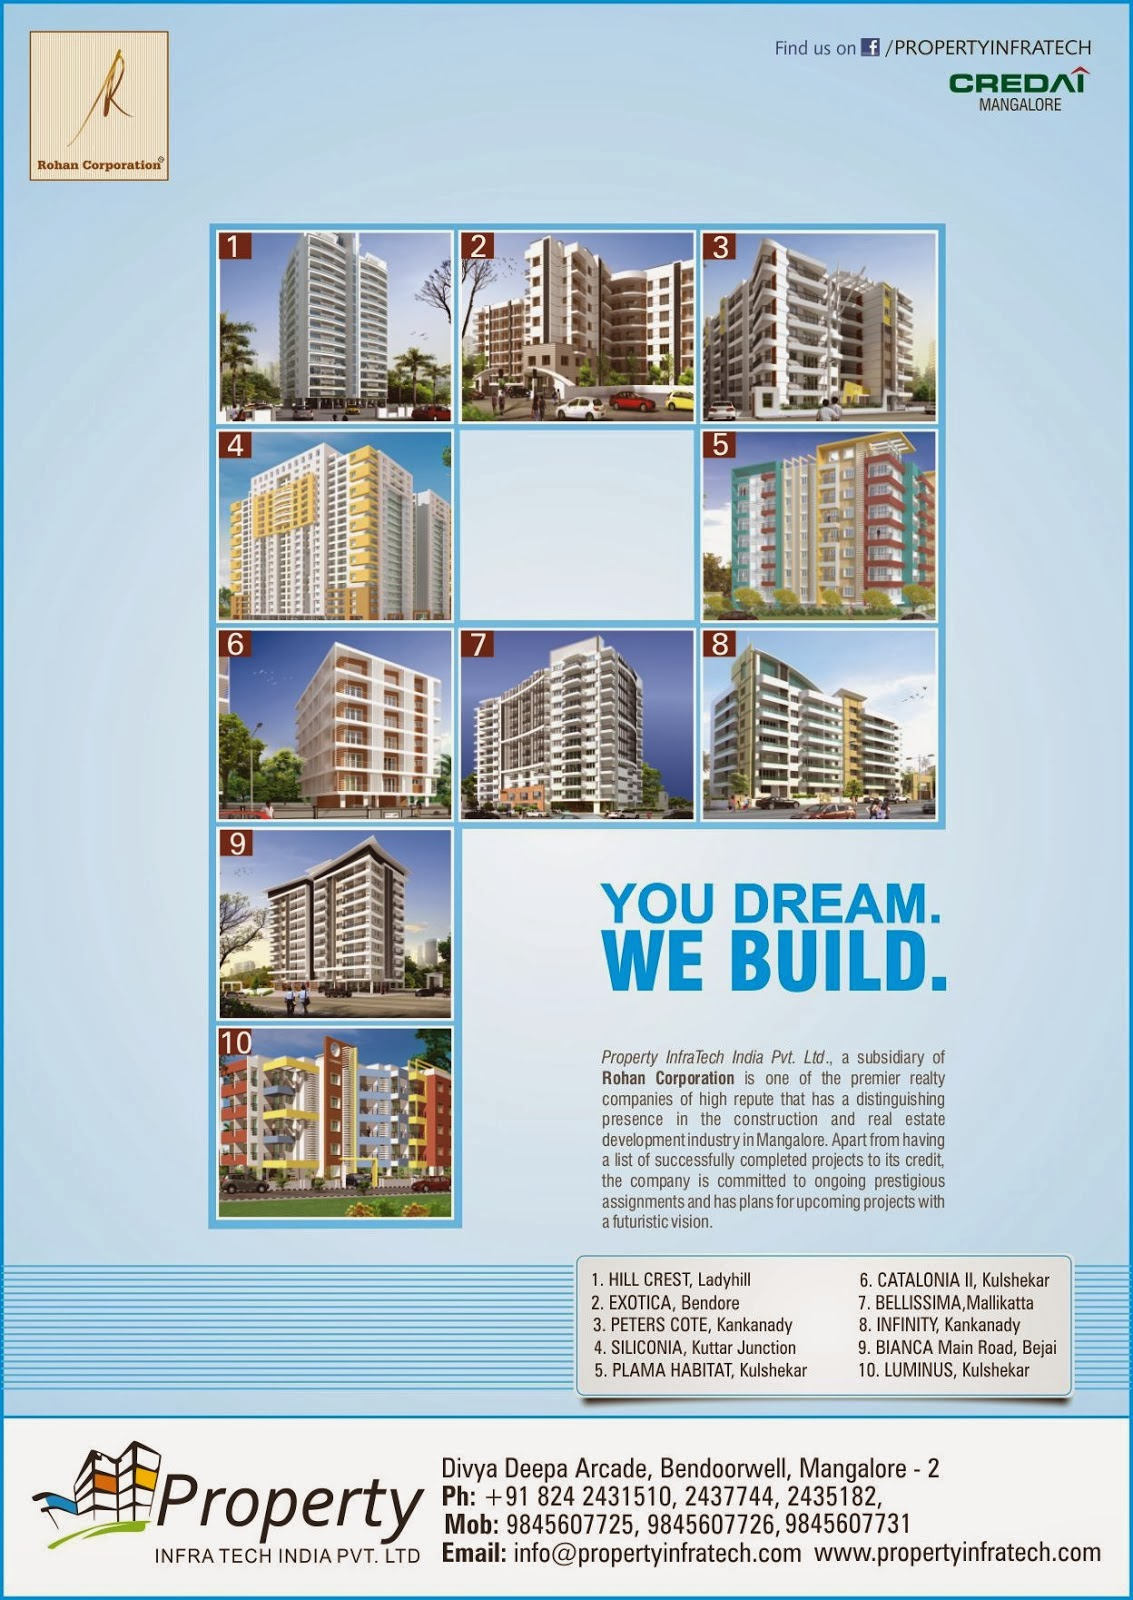 Author Cdy >> Property Infratech Paper Ad | DESIGN